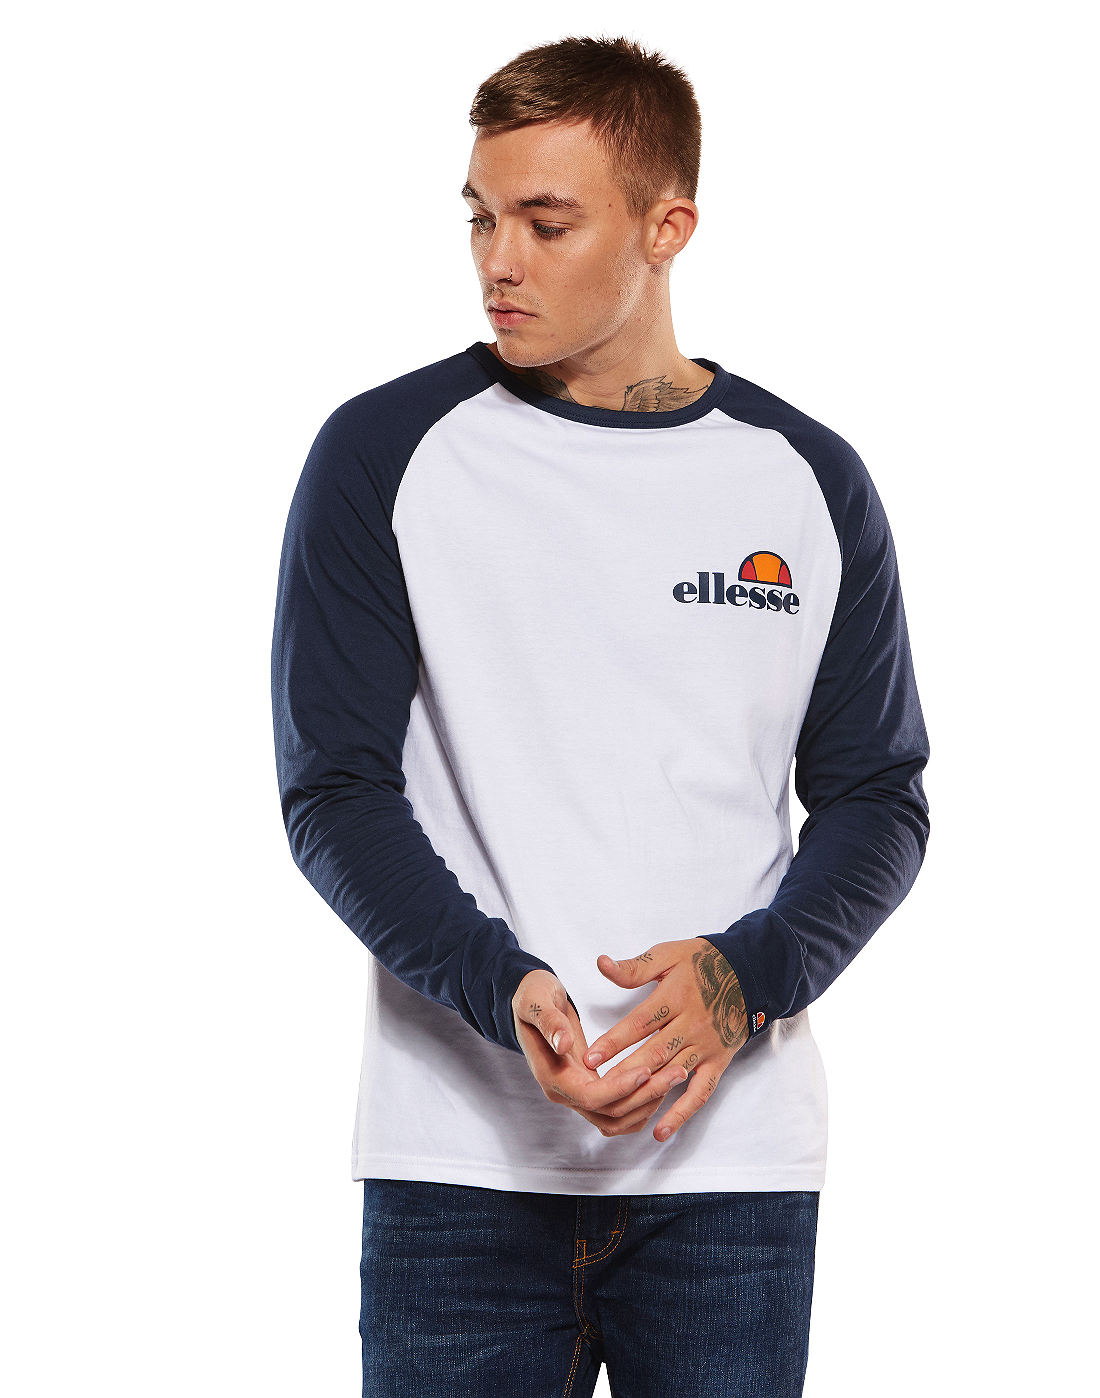 1283d4960a Ellesse Mens Thero Long Sleeve T-Shirt | Life Style Sports